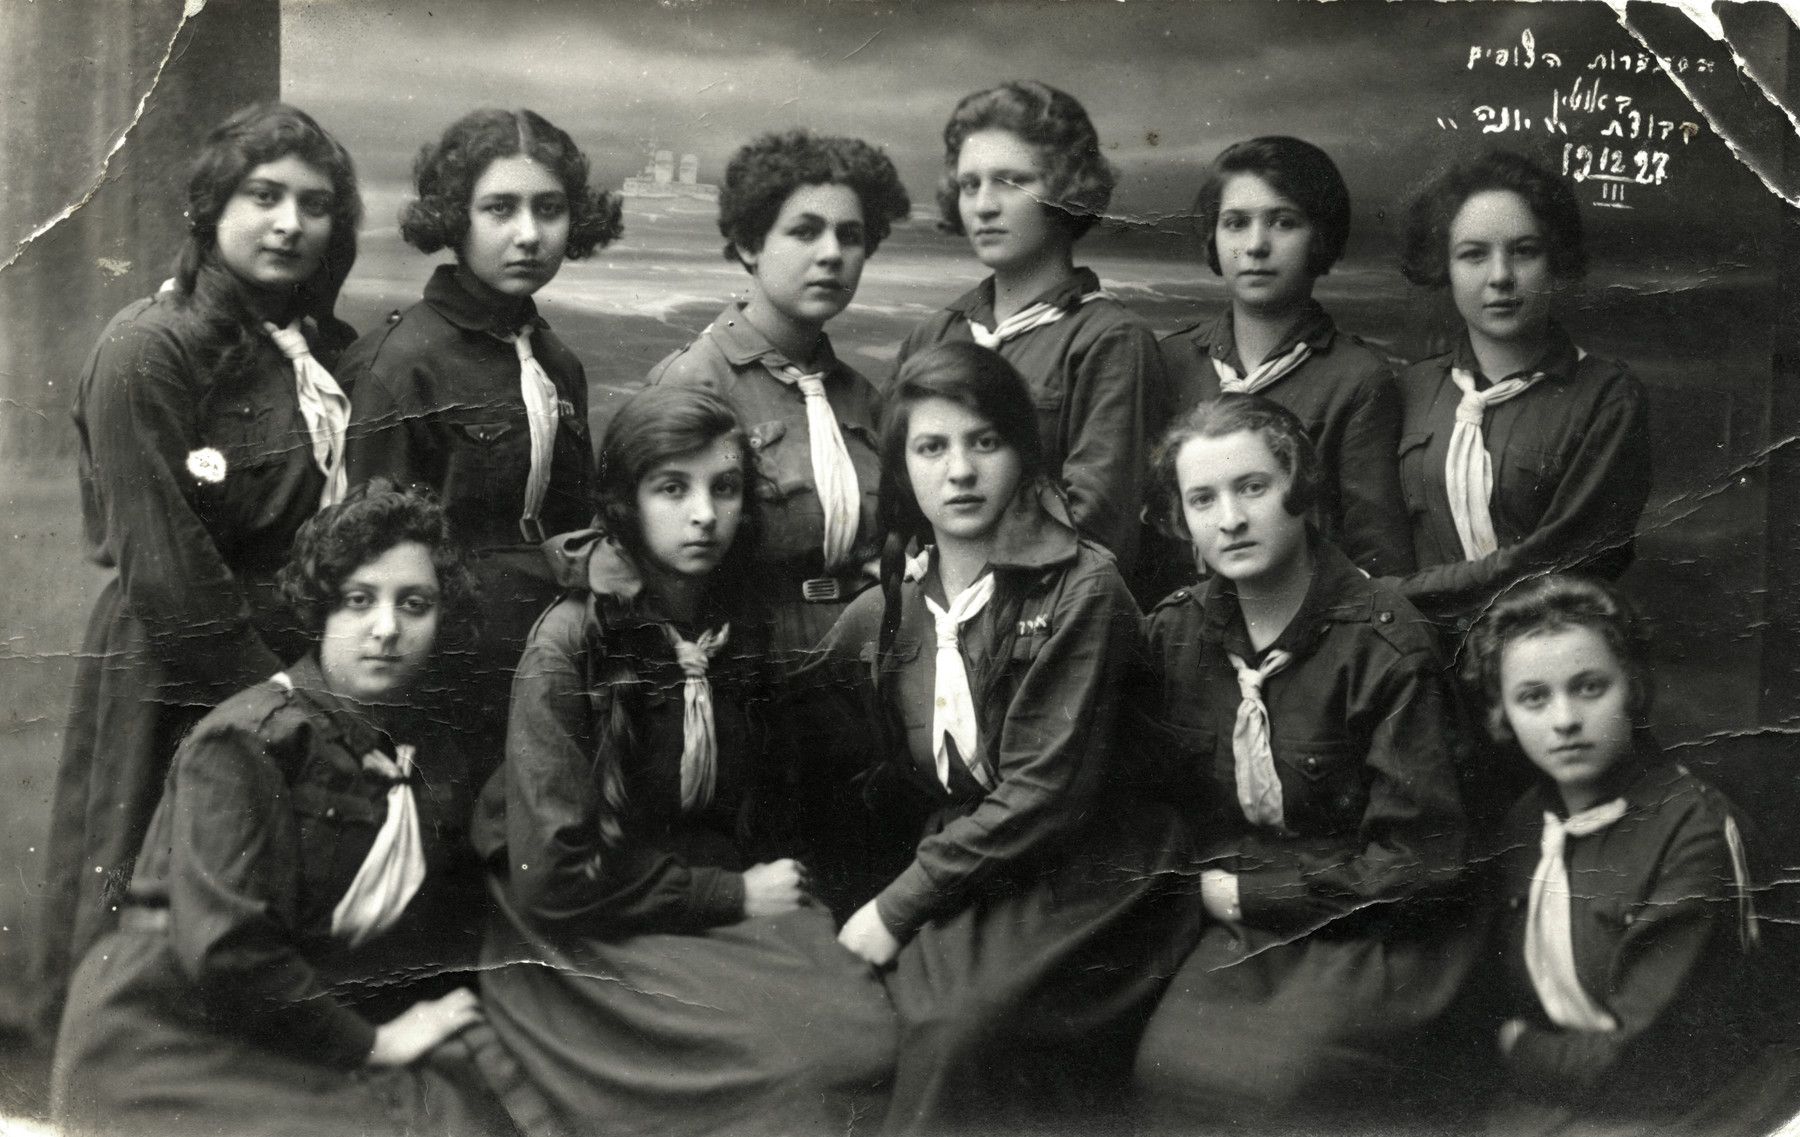 Group portrait of teenage girls in a Jewish scout unit in Utena.  Chana Rudashevsky is pictured in the top row, second from the right.